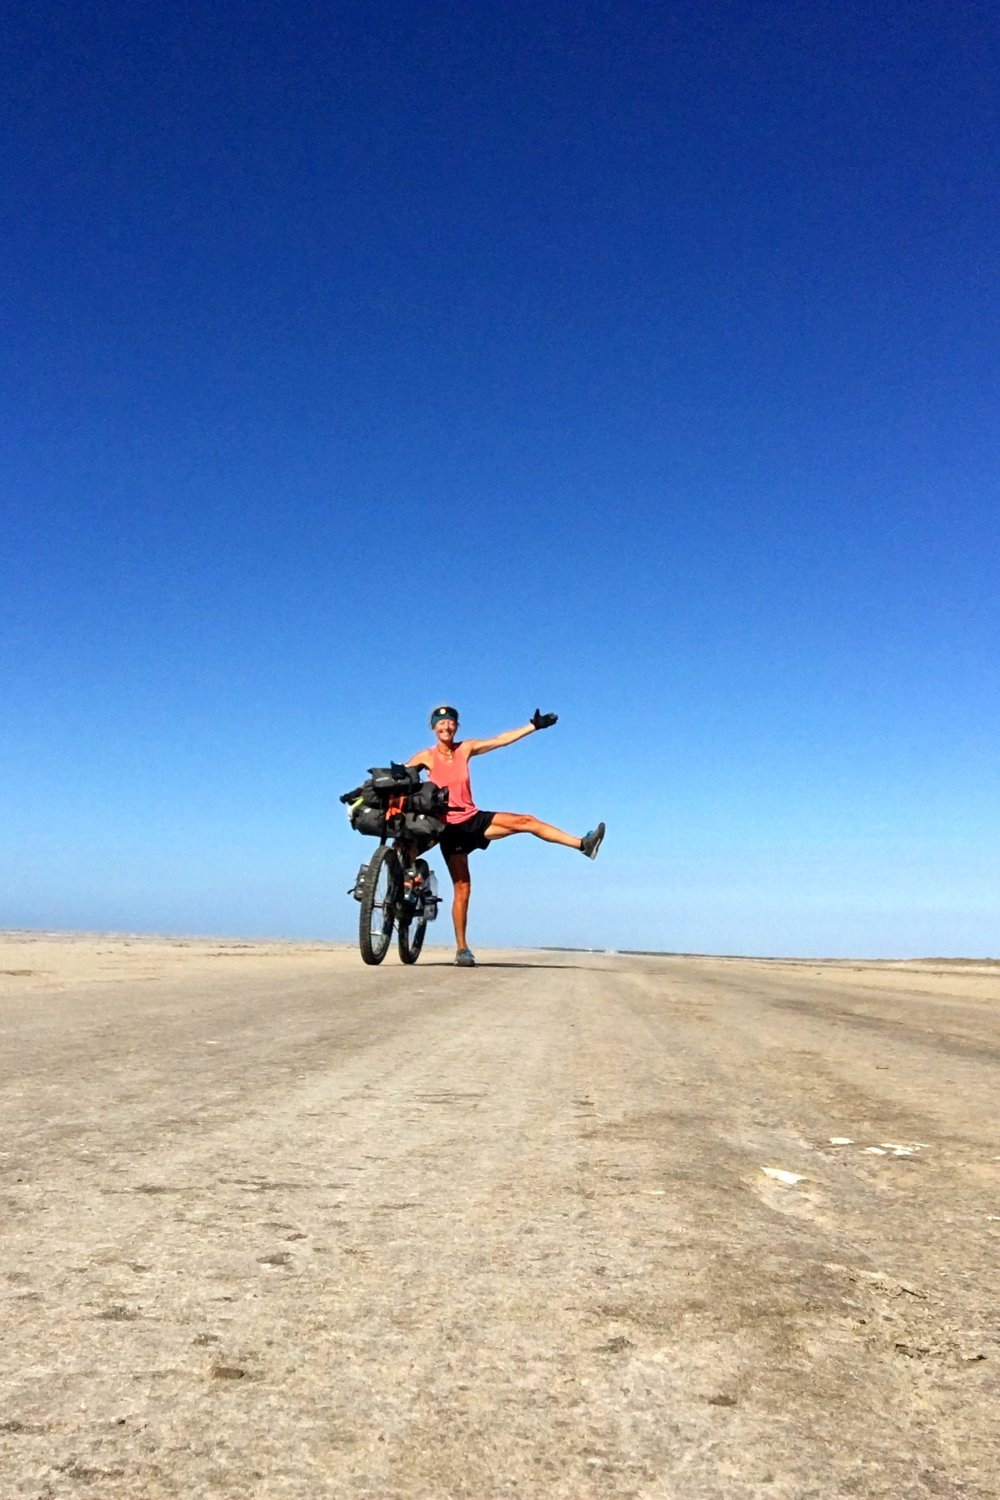 Riding on The salt flats fifty feet below see level